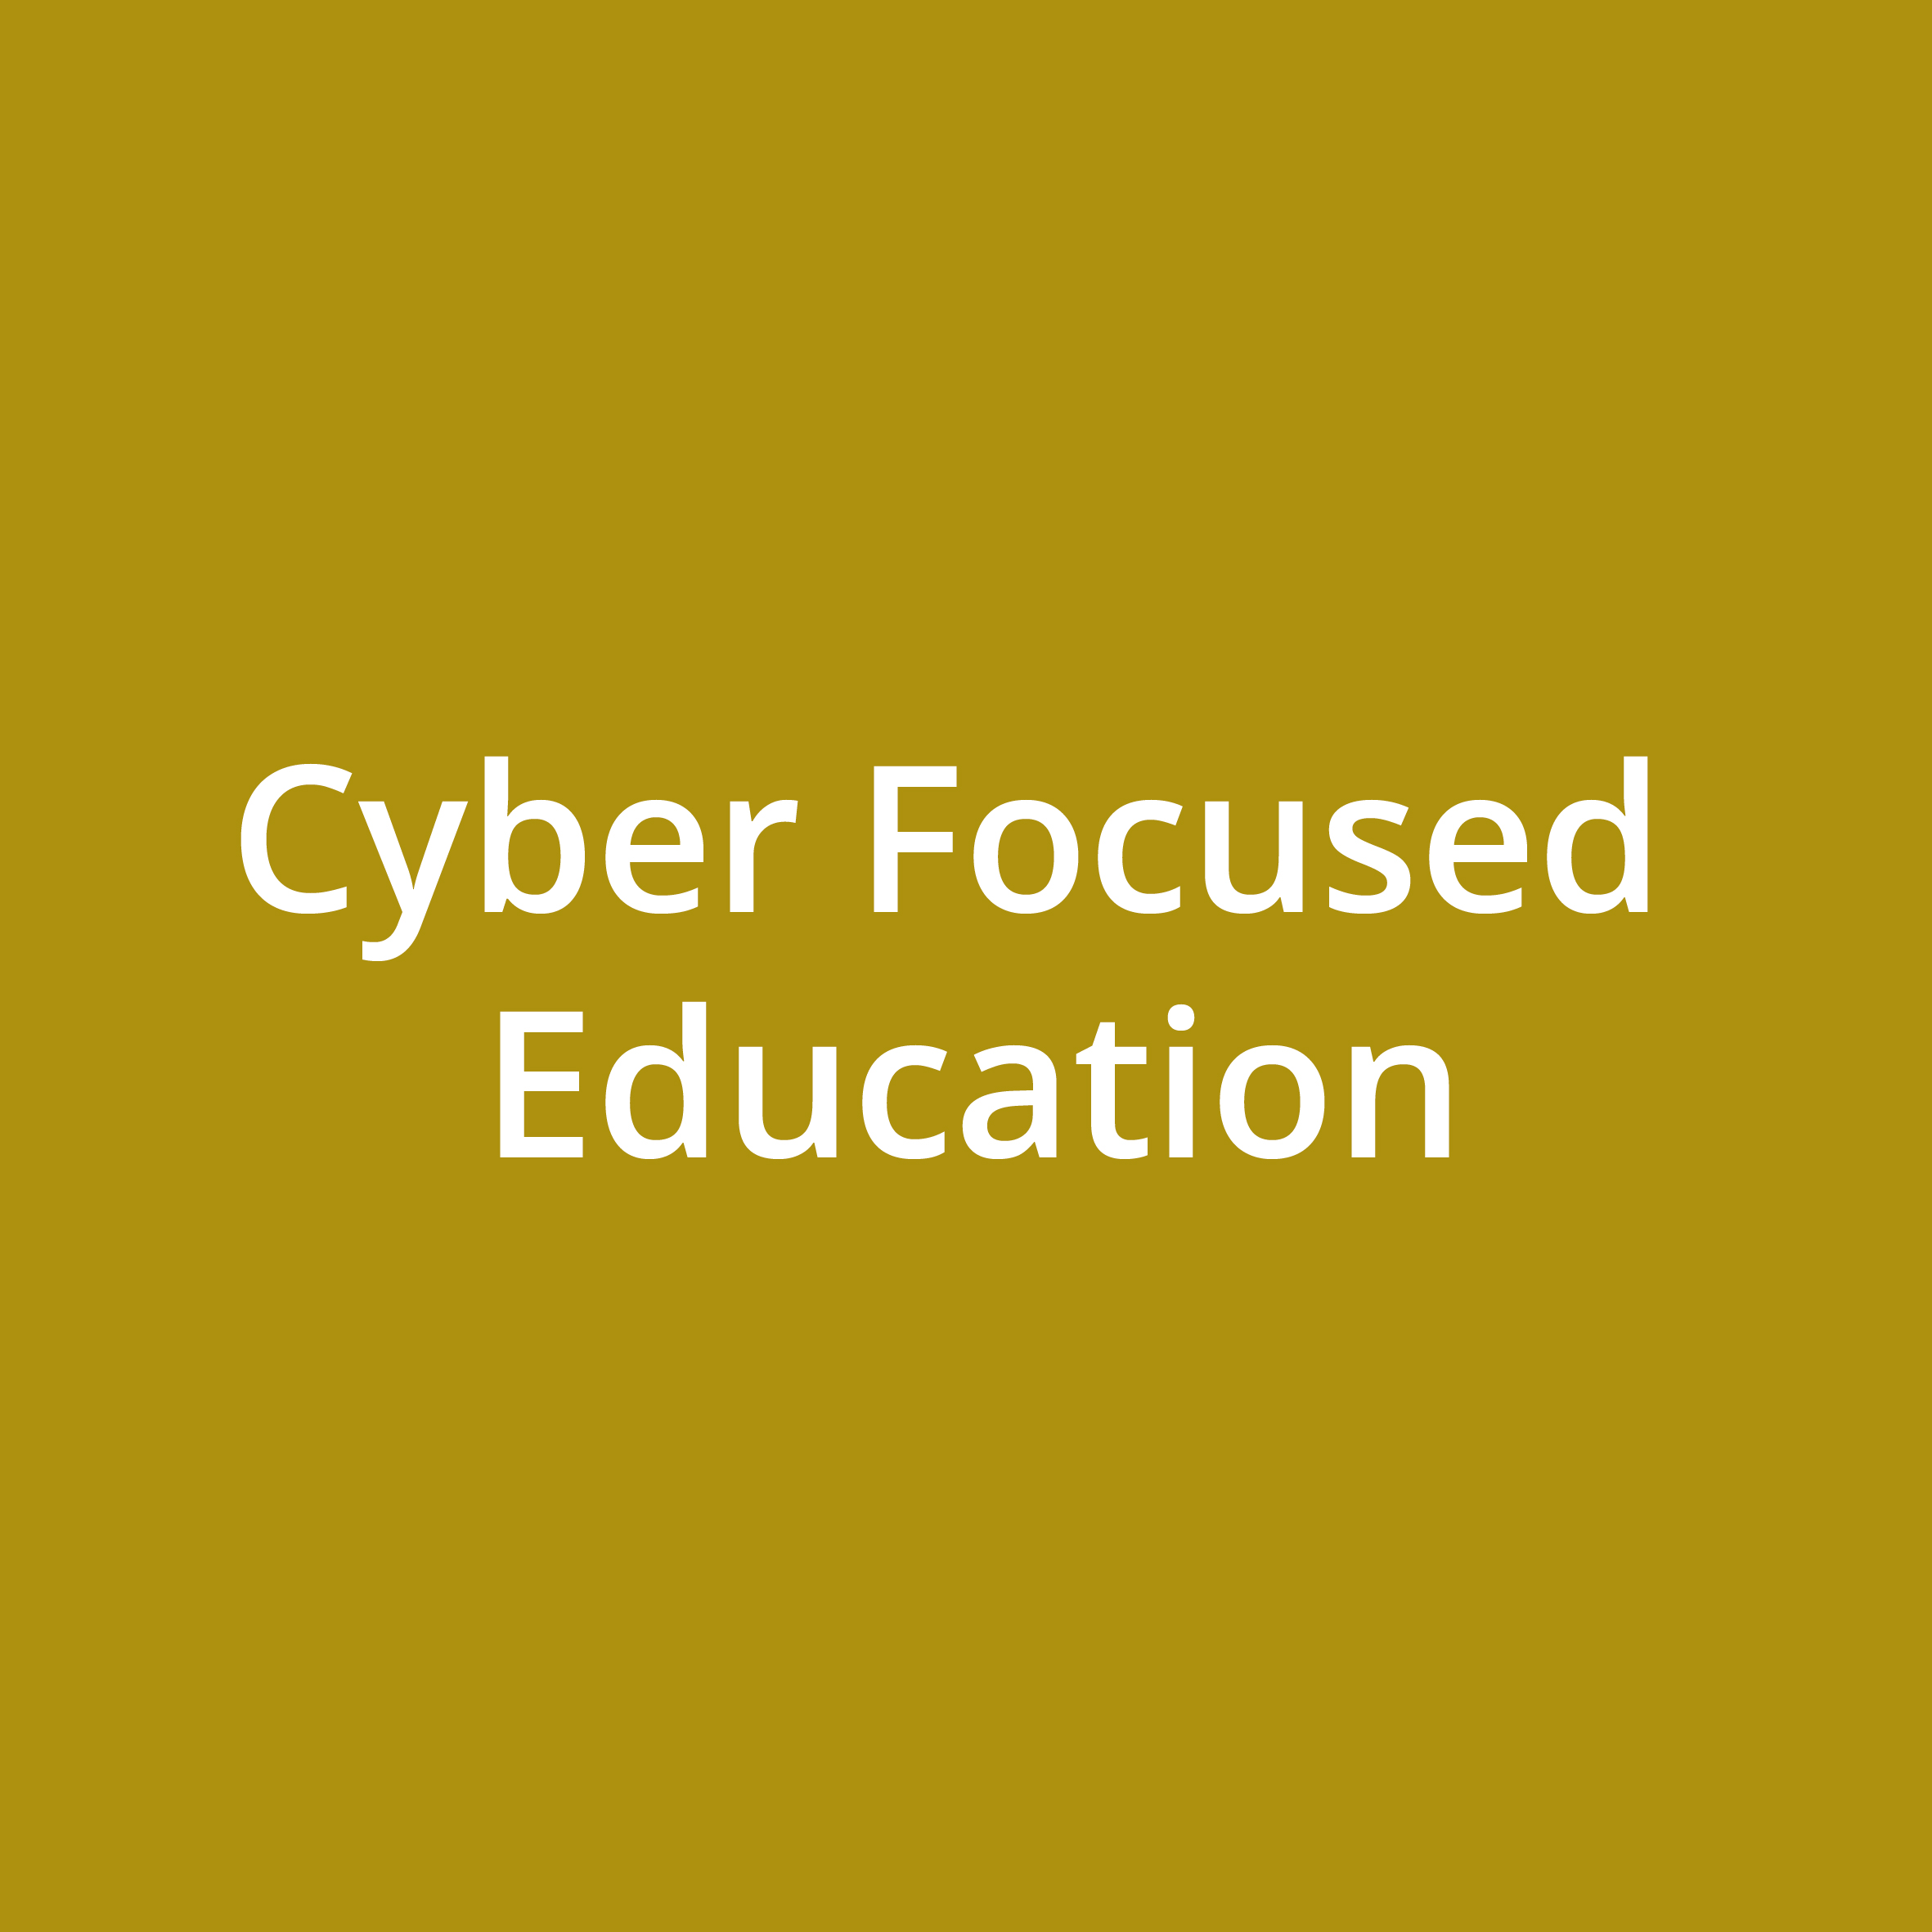 Cyber Focused Education